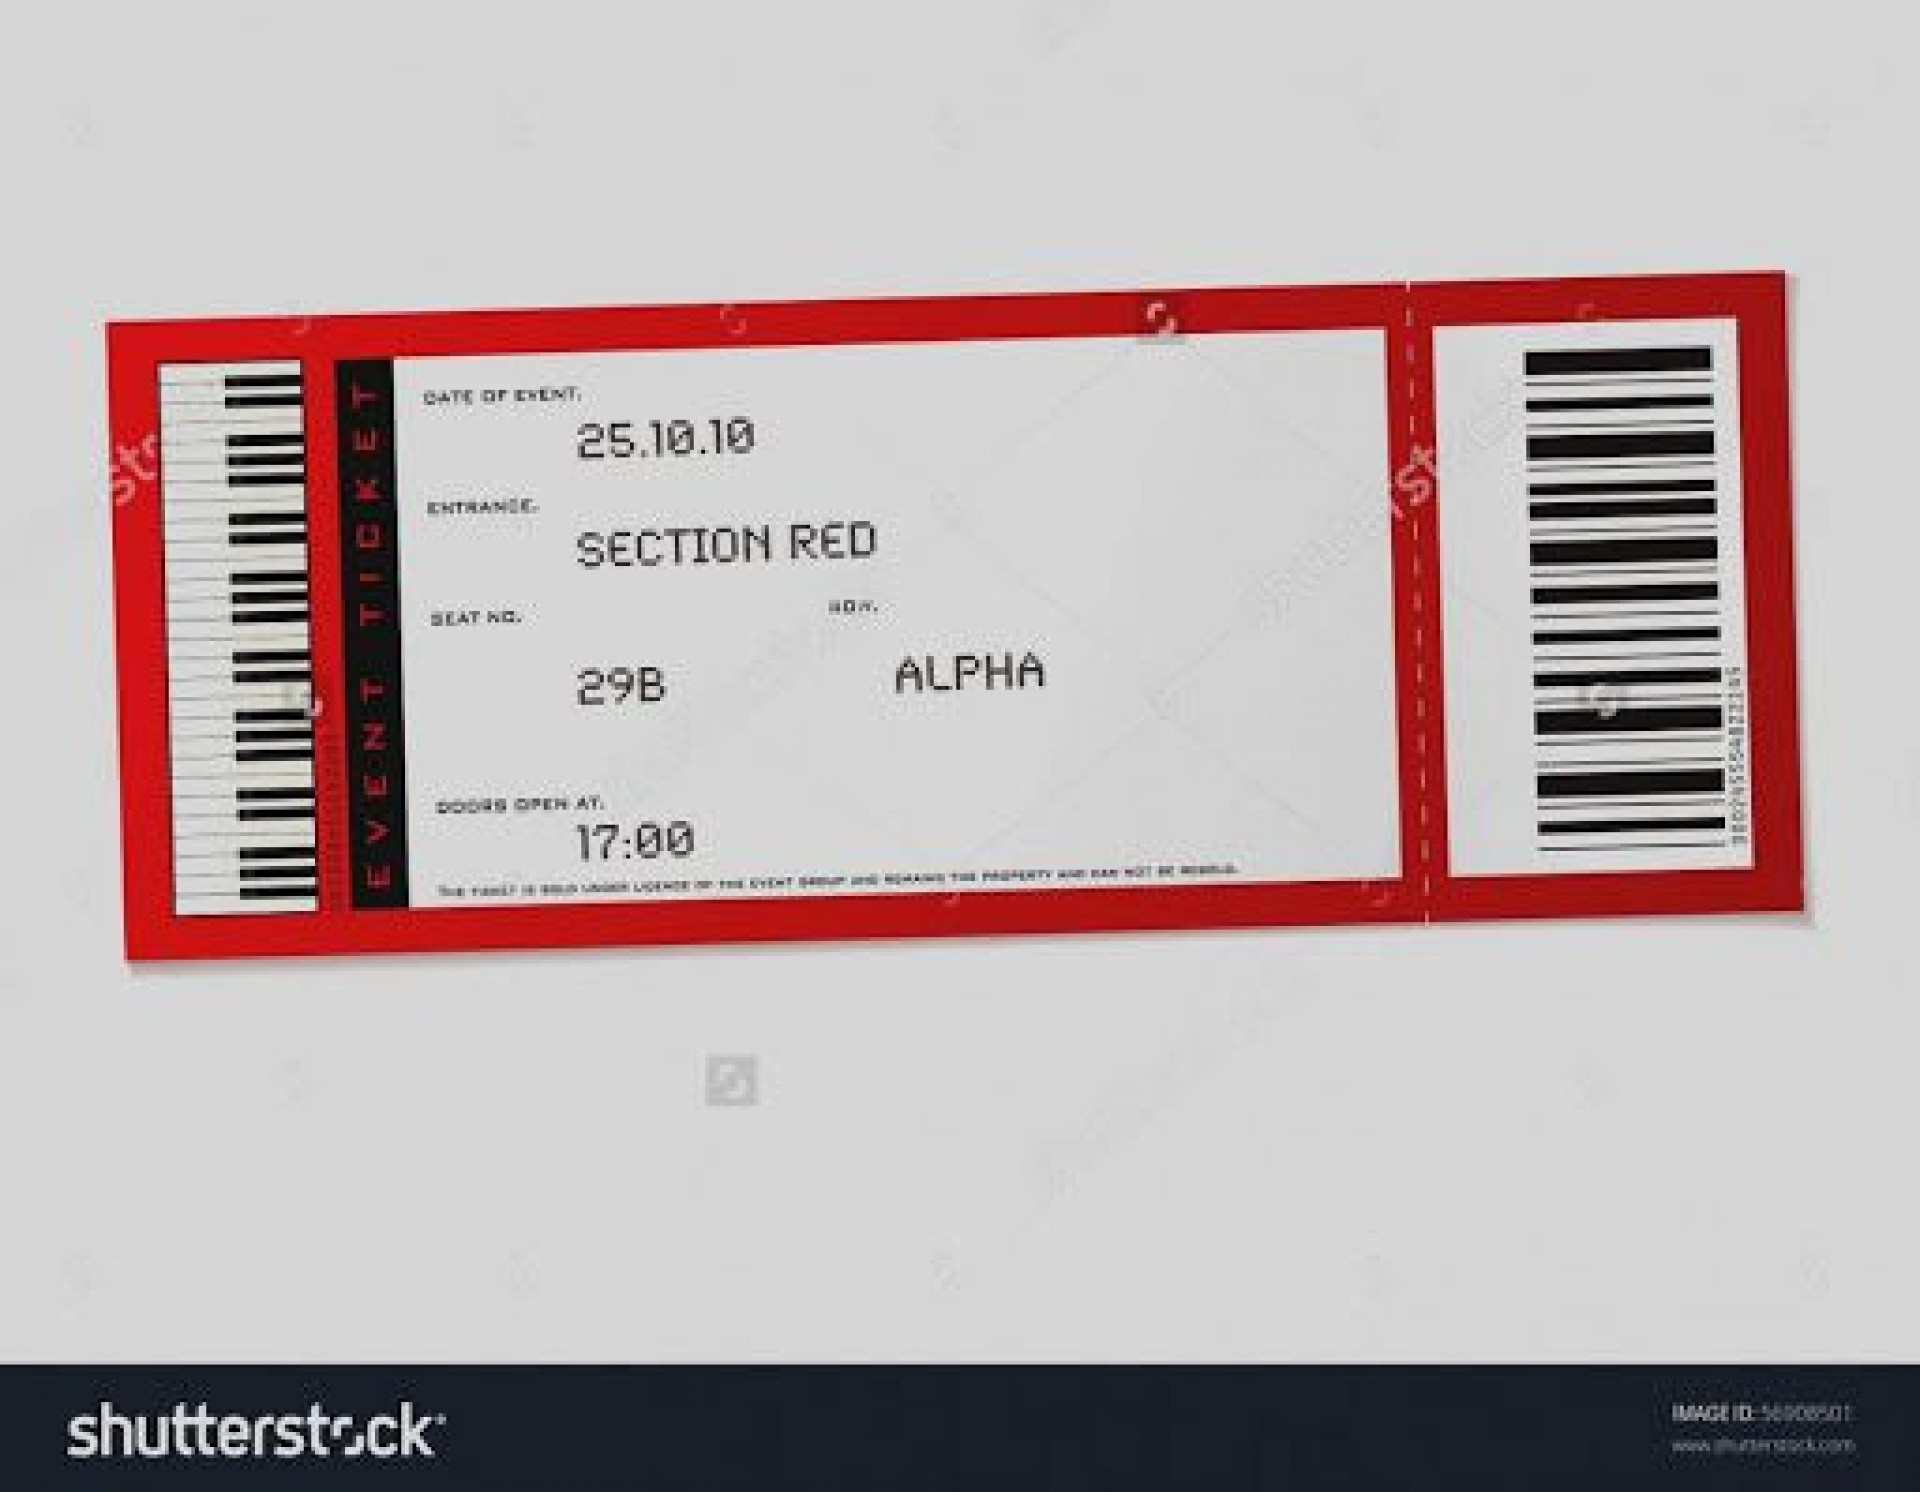 009 Incredible Free Concert Ticket Template Printable Picture  Gift1920